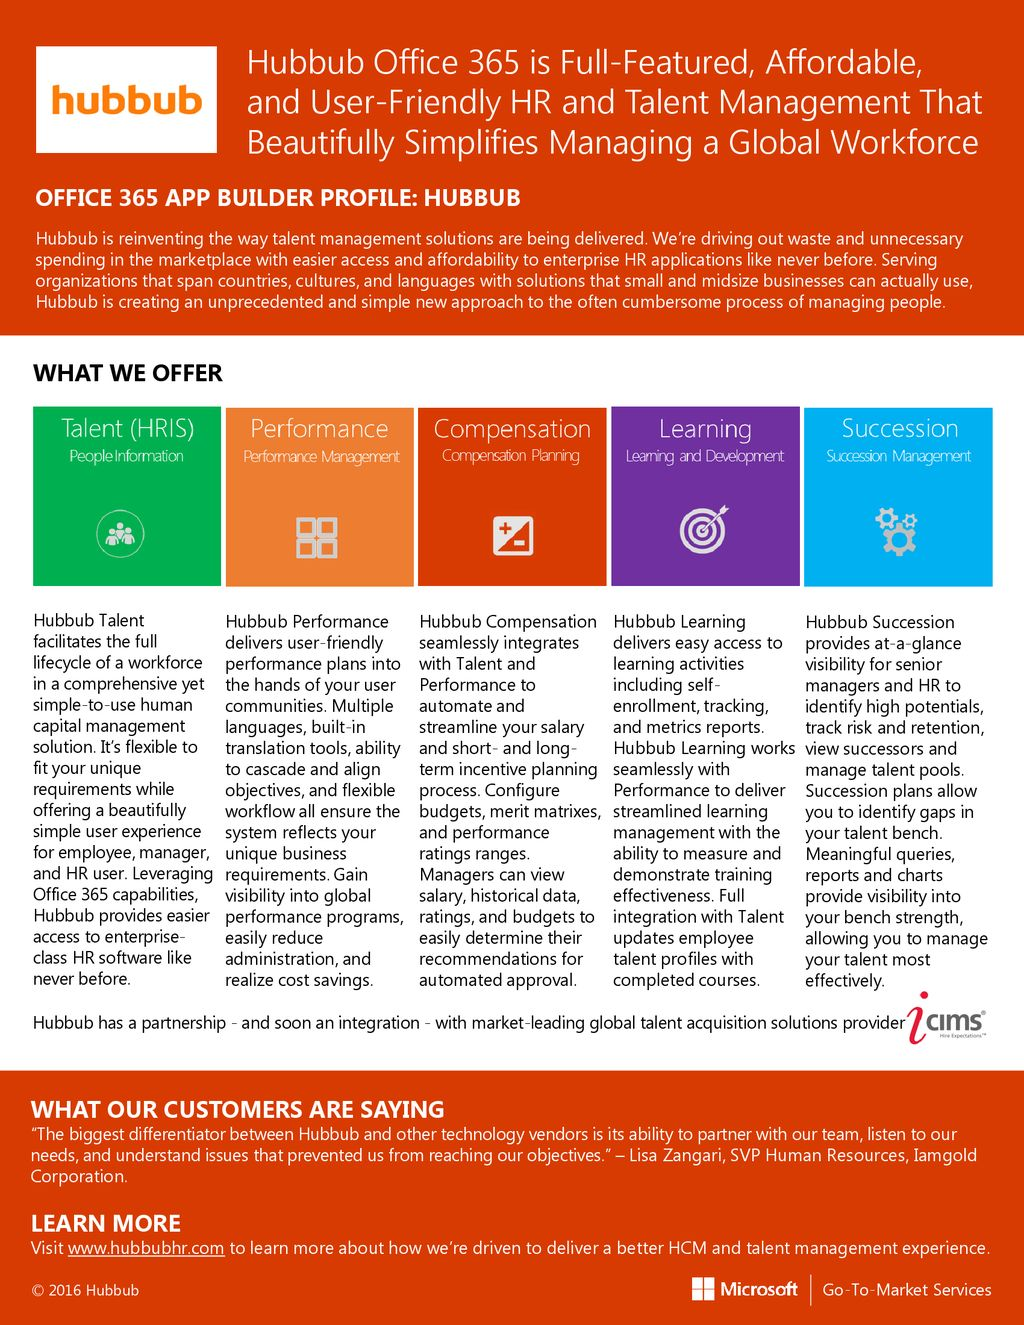 Hubbub Office 365 is Full-Featured, Affordable, and User